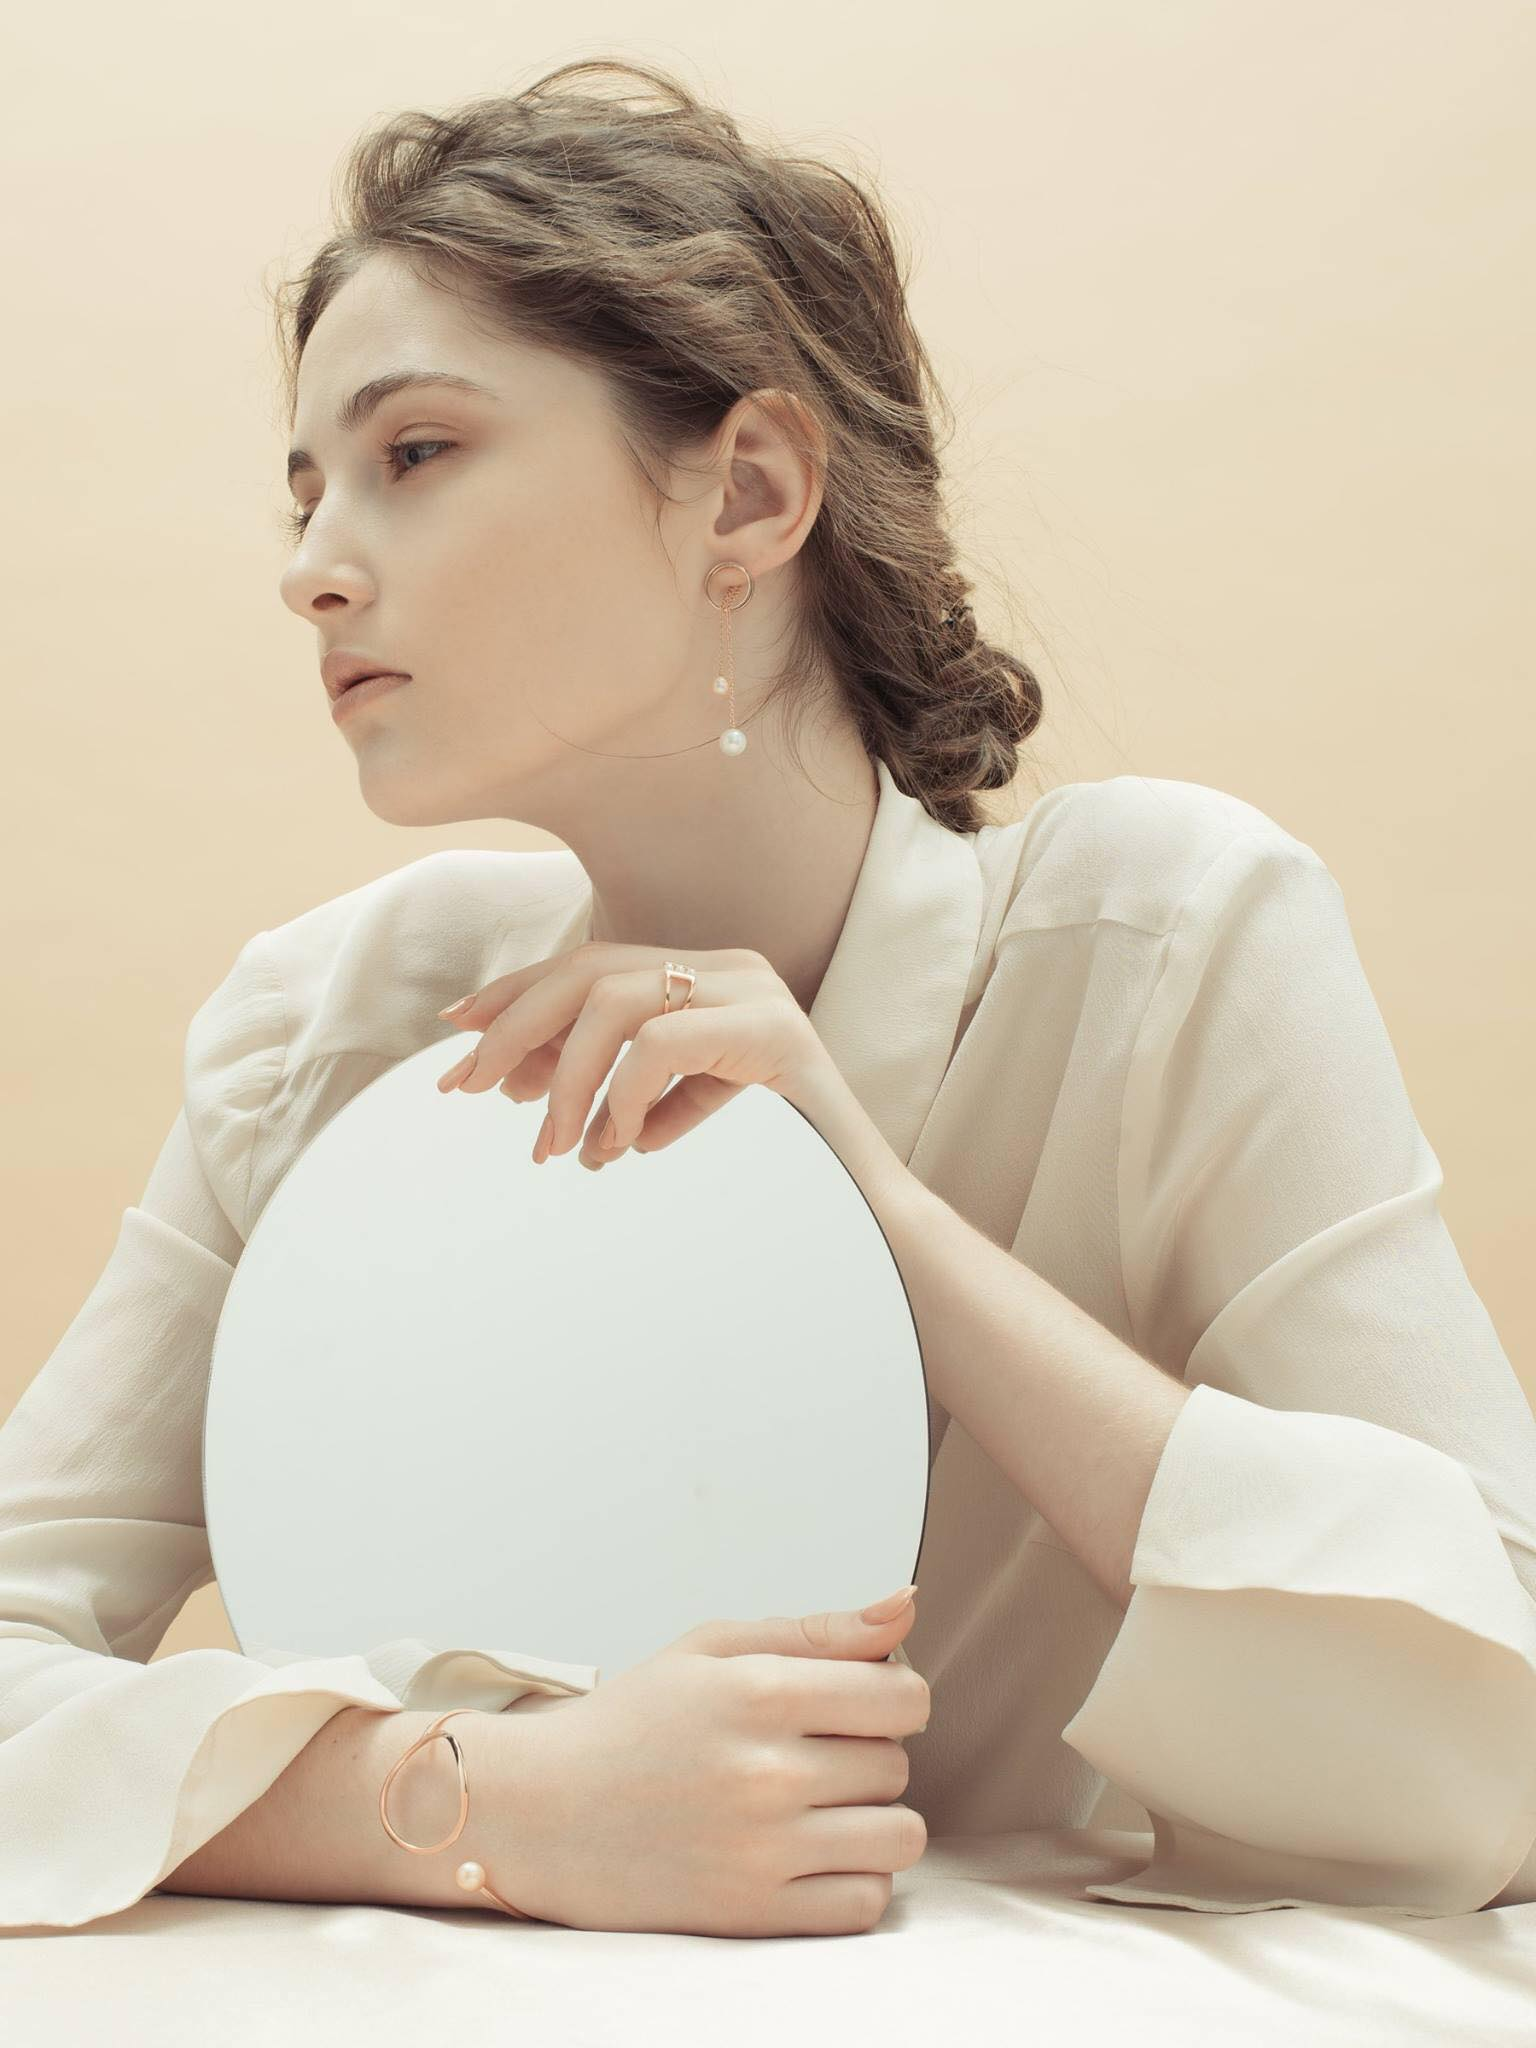 Michi Liang Jewelry 2017 lookbook  Photo / Ernie Chang  Makeup and hair / Yenting